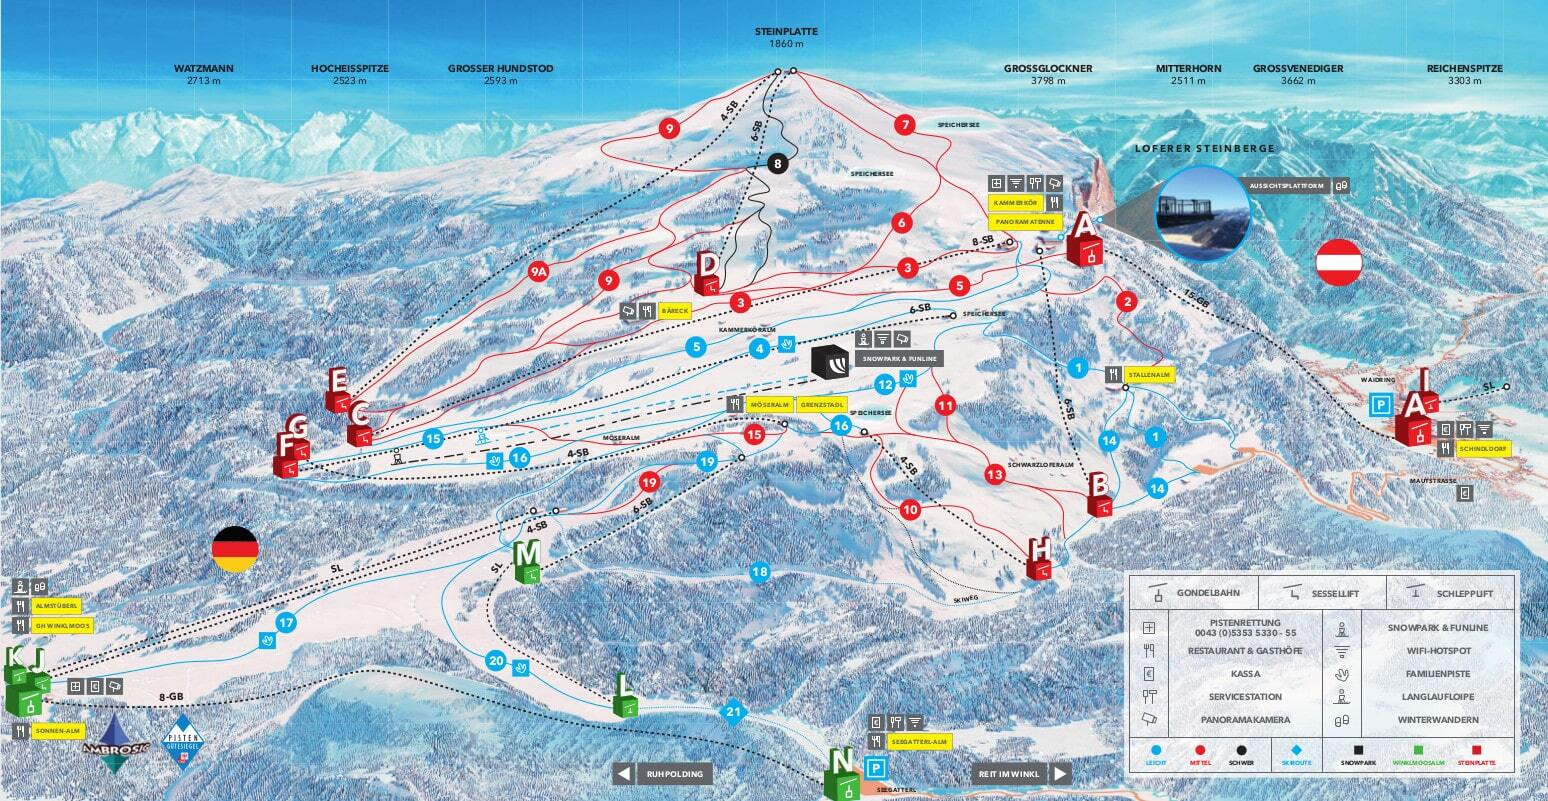 Reit im Winkl Piste / Trail Map